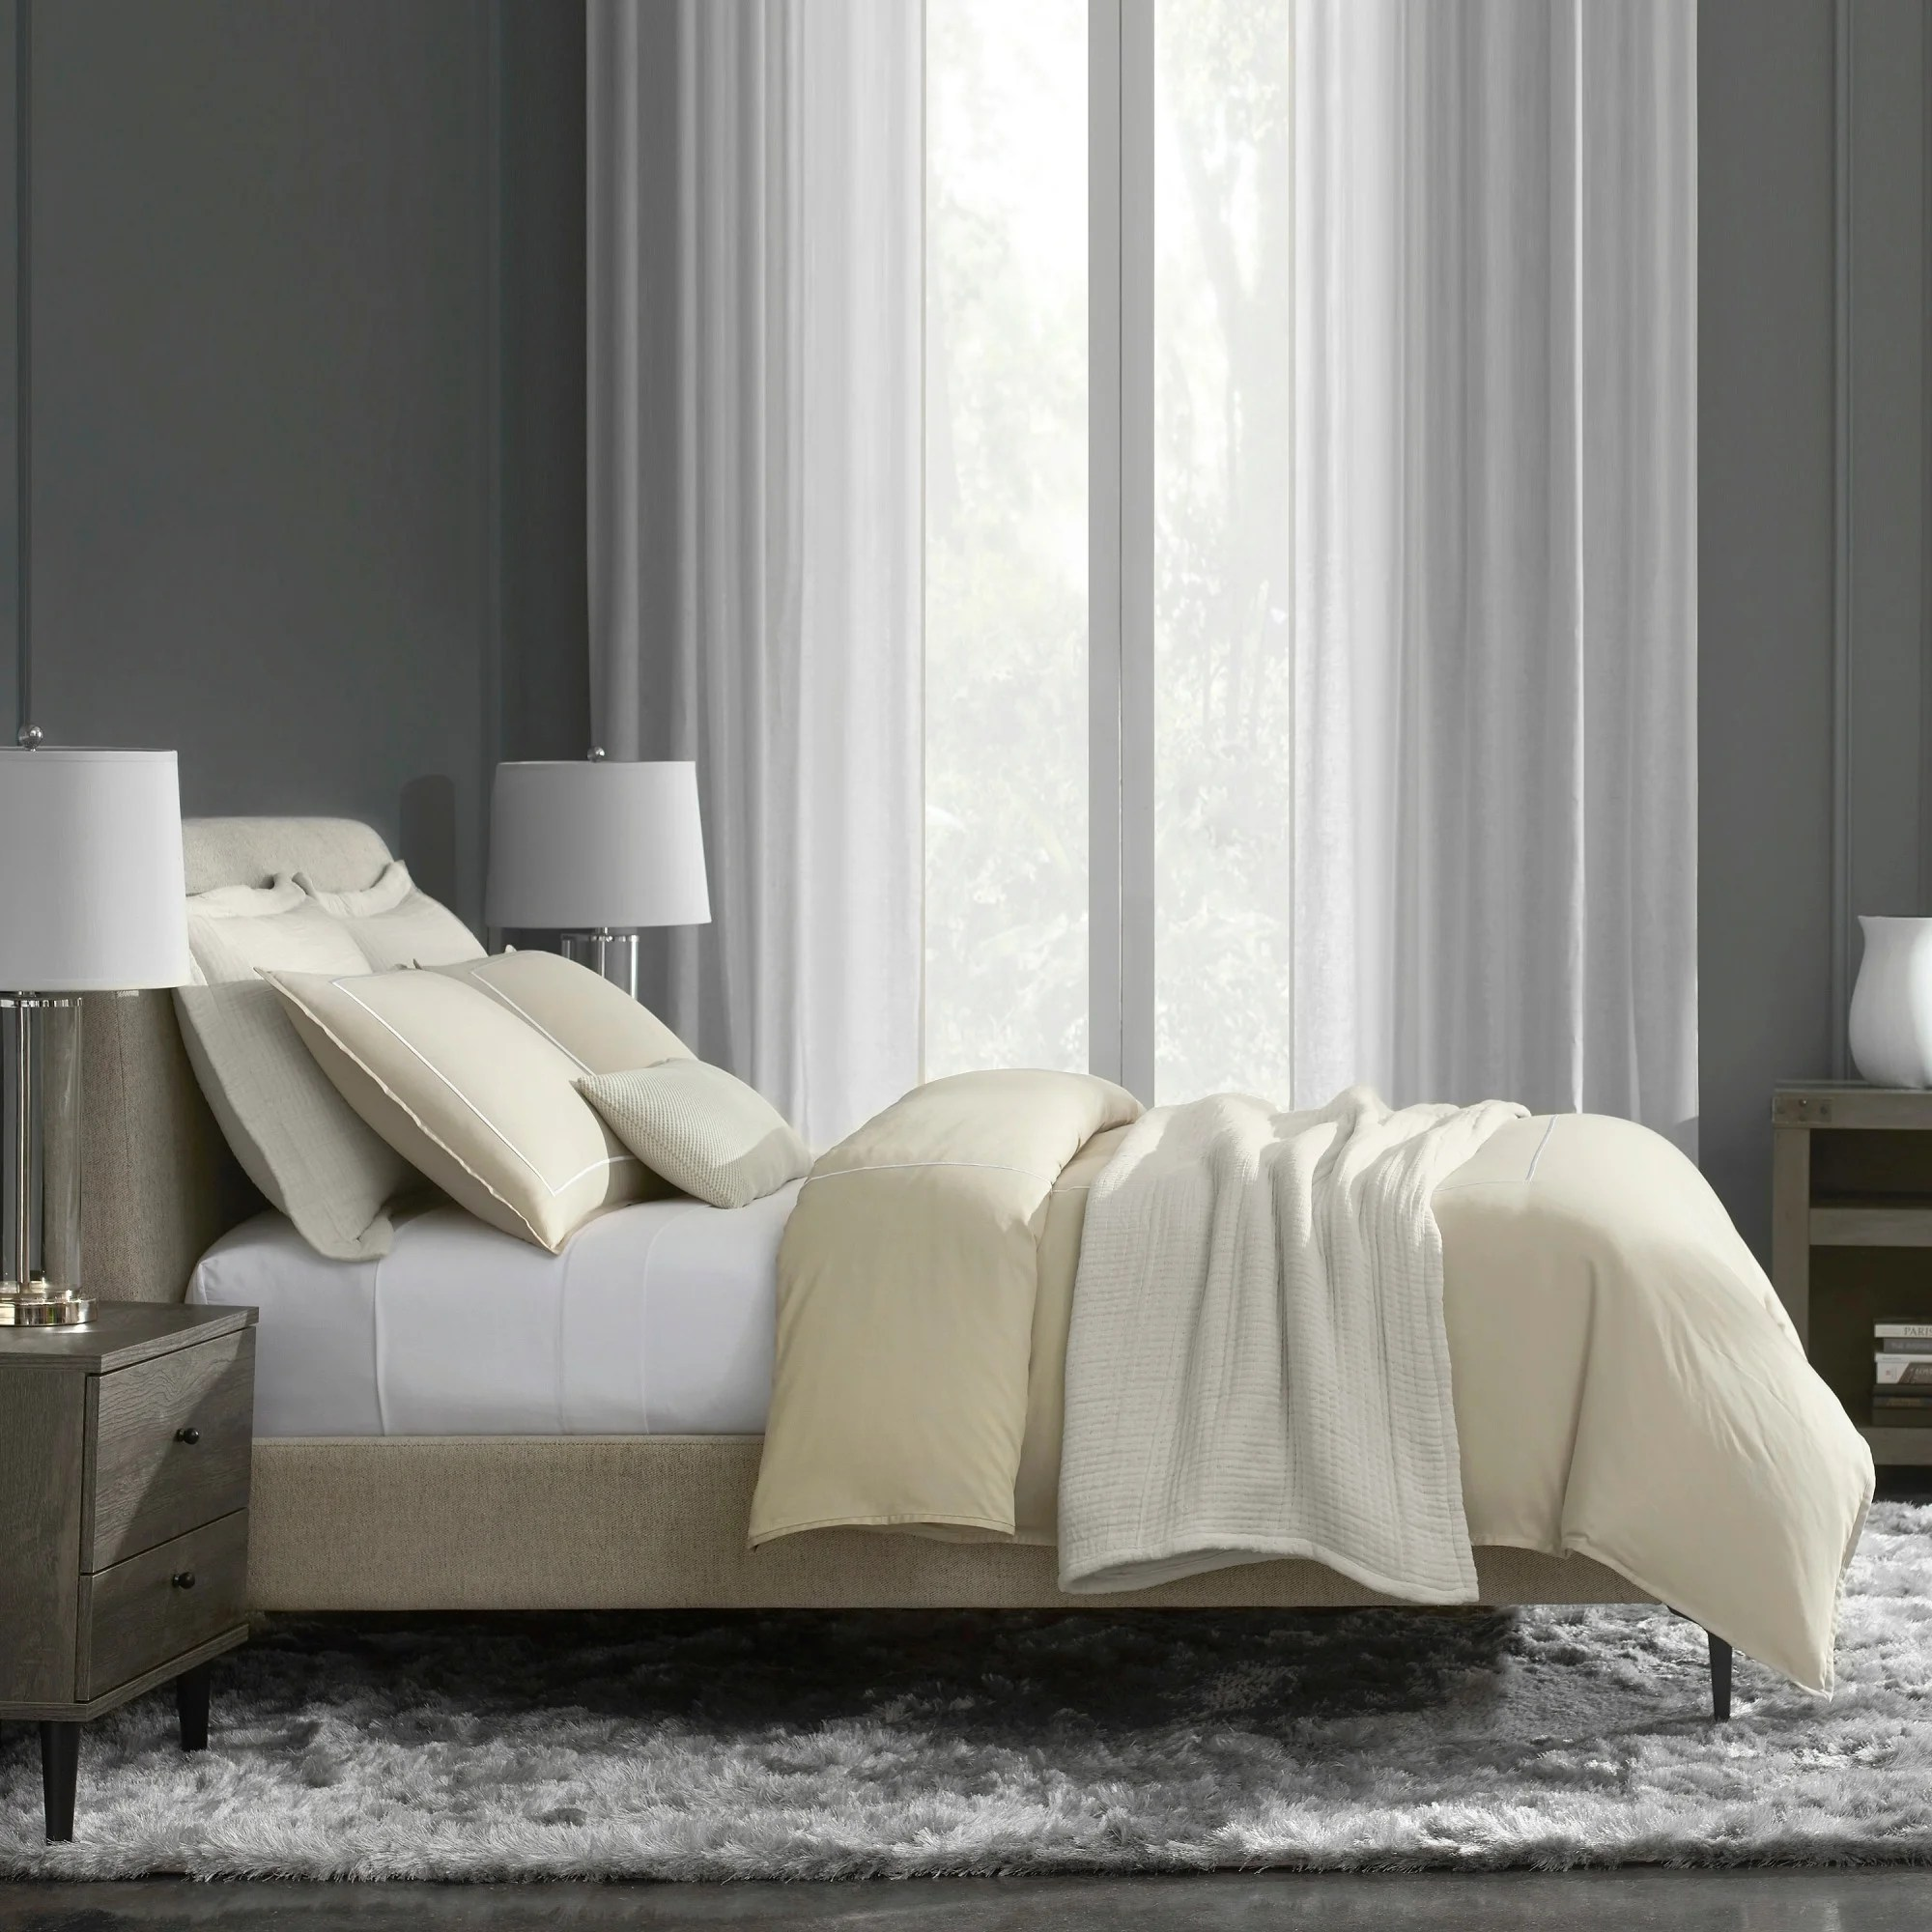 Satin Duvet Cover Flatiron Hotel Satin Stitch Duvet Cover